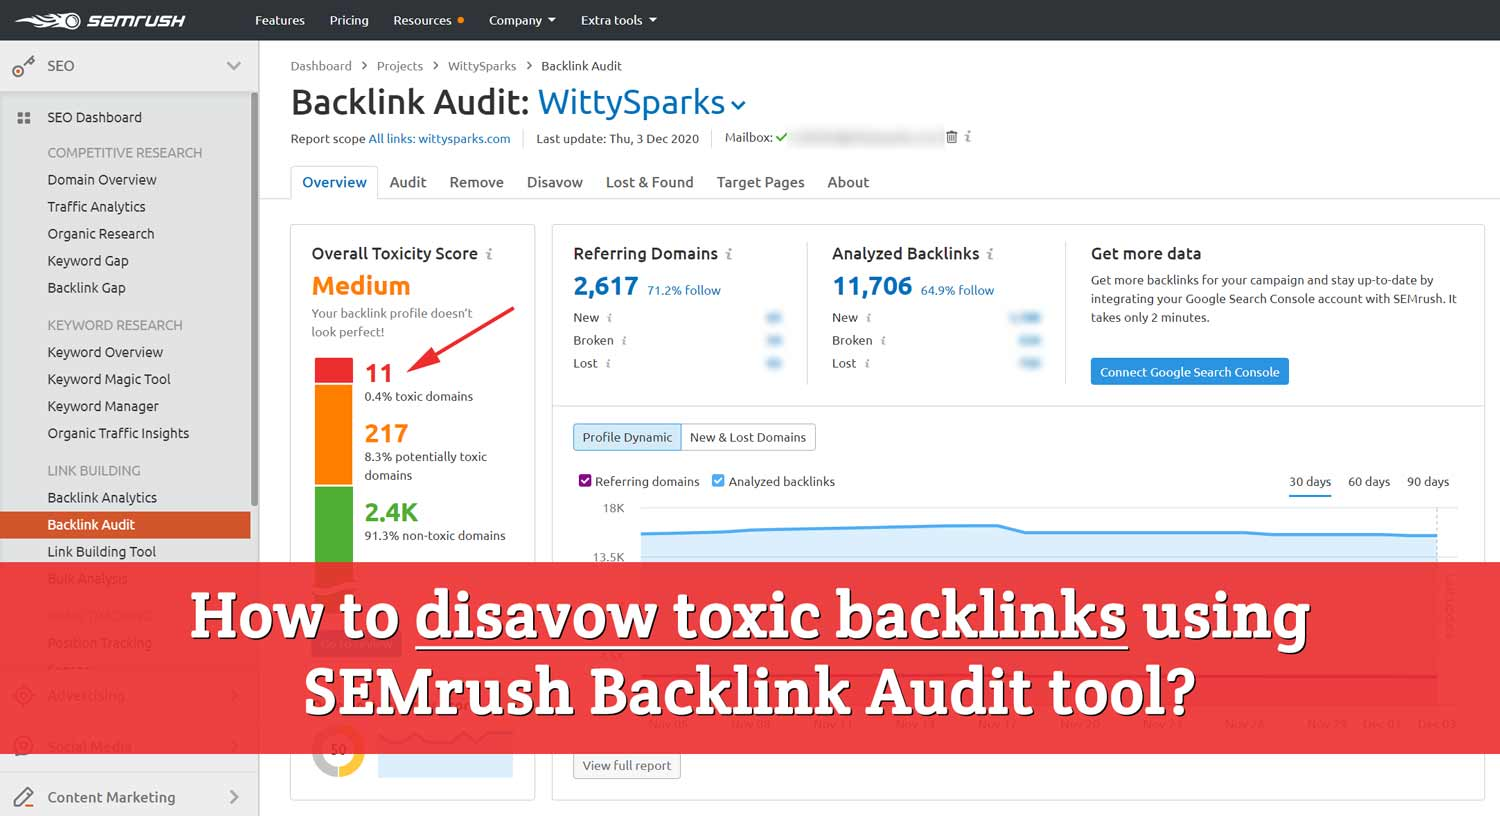 How to remove a toxic backlink using SEMrush Audit tools?